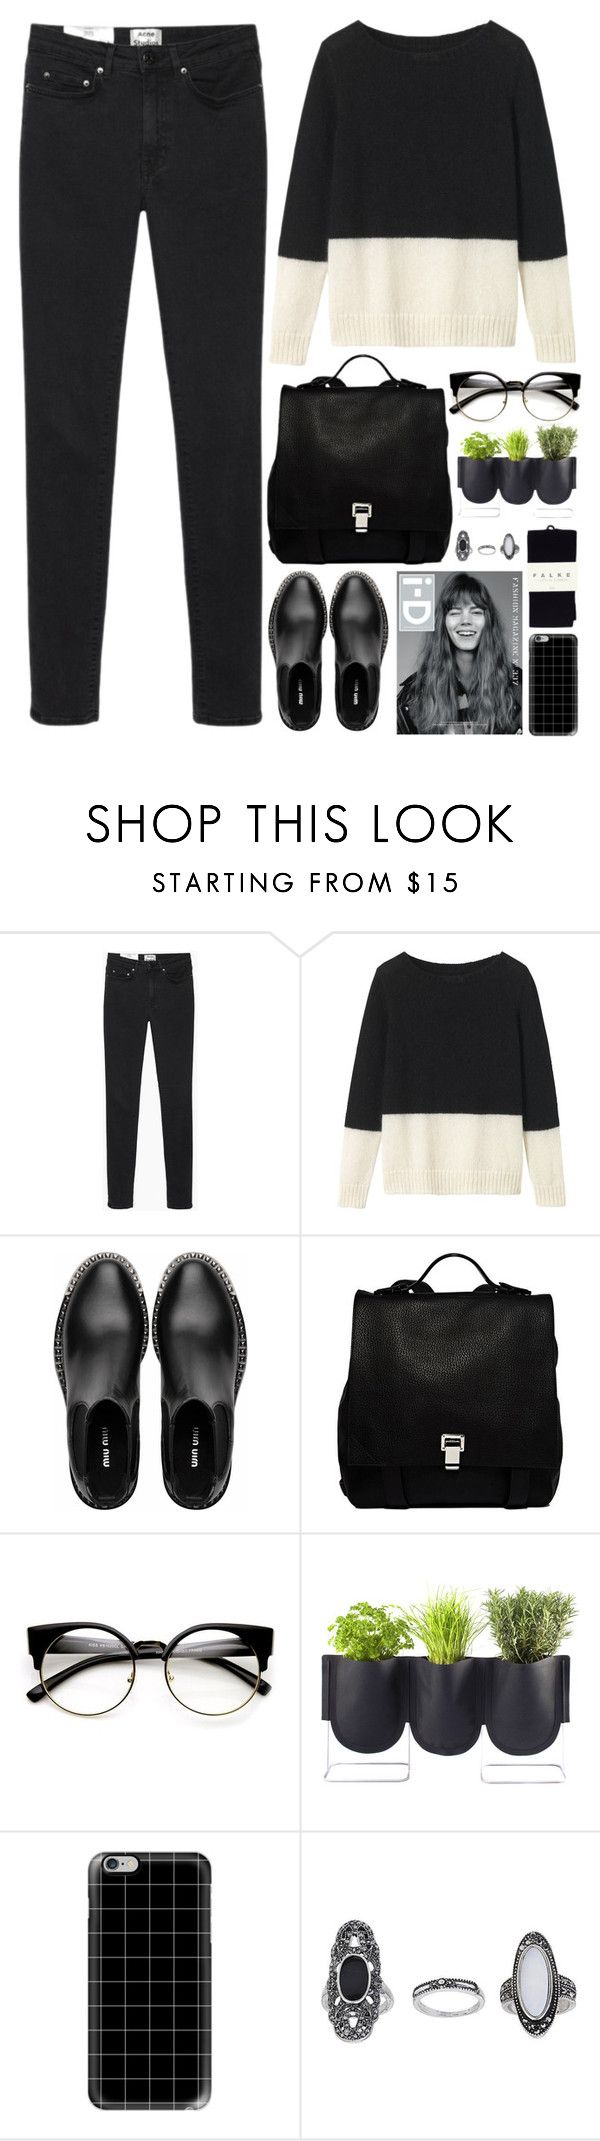 """""""Dog Days Are Over"""" by annaclaraalvez ❤ liked on Polyvore featuring мода, Acne Studios, Toast, Miu Miu, Proenza Schouler, Authentics, Casetify, Topshop и Falke"""